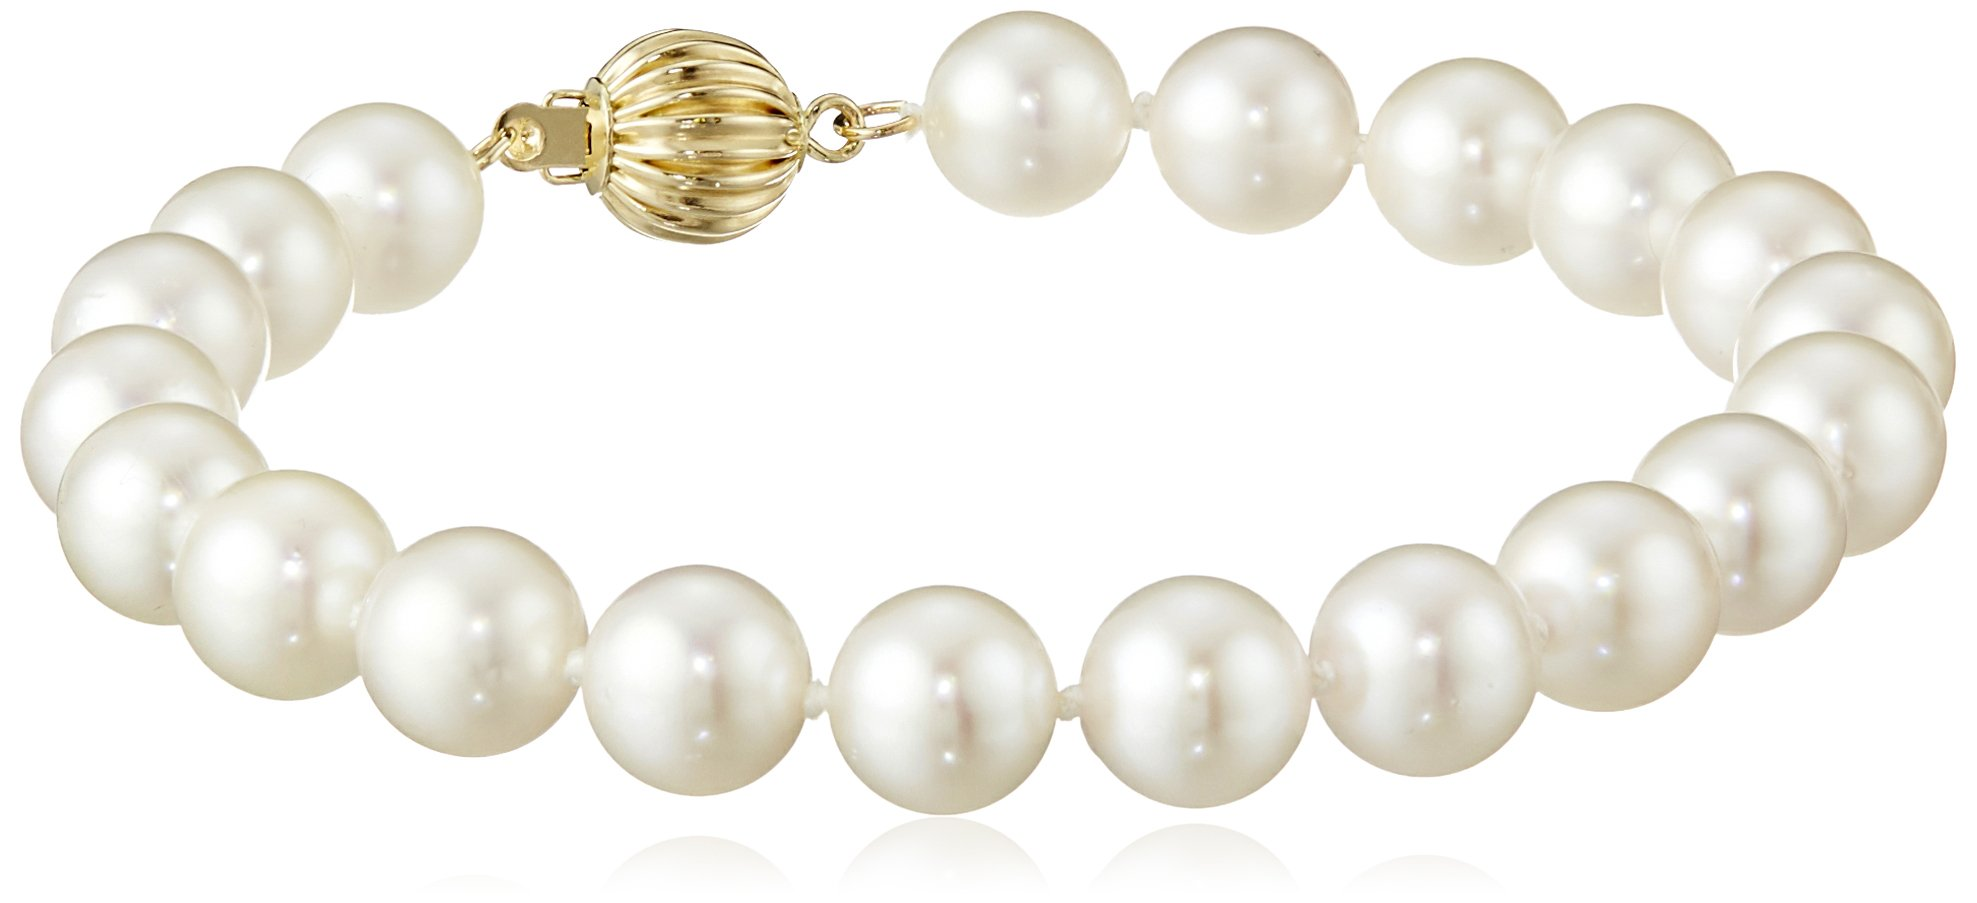 14k Yellow Gold  AA Quality Saltwater Cultured Akoya Cultured Pearl Bracelet (7.5-8mm)